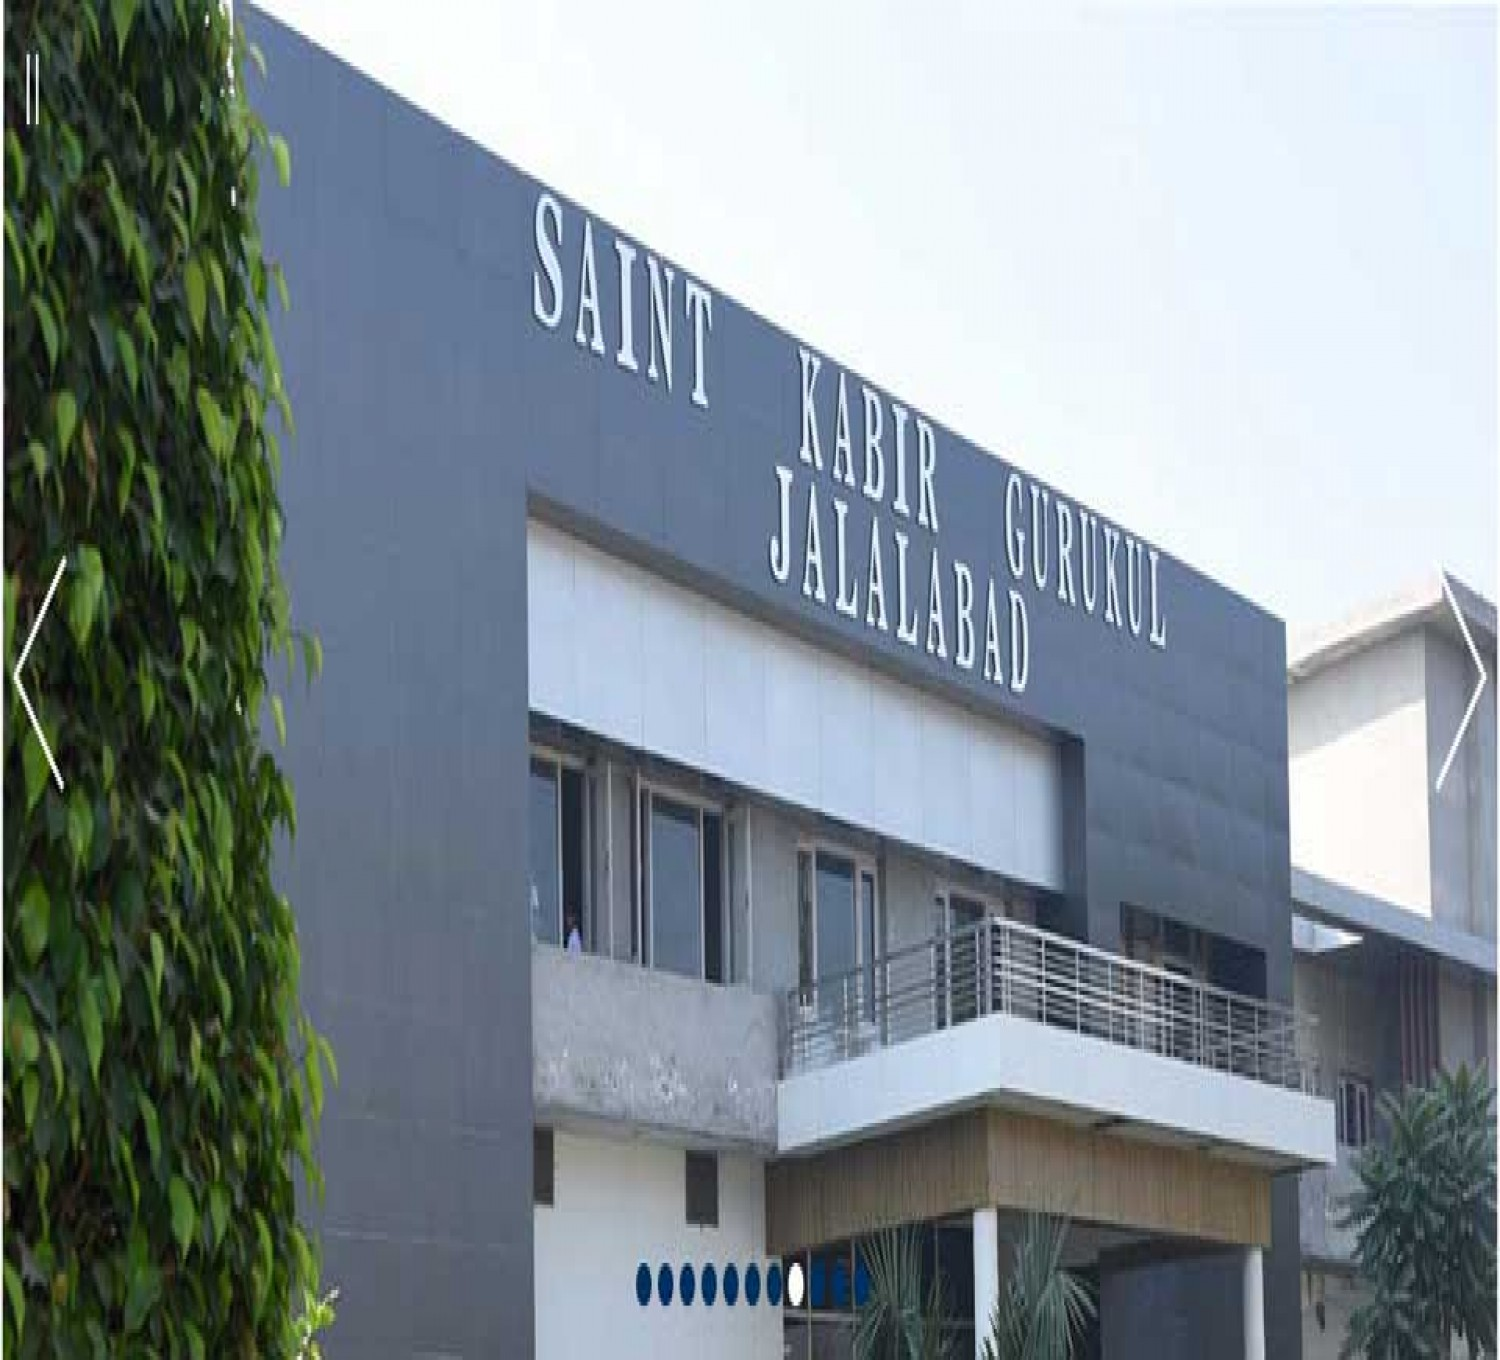 Saint Kabir Gurukul Senior Secondary School_cover